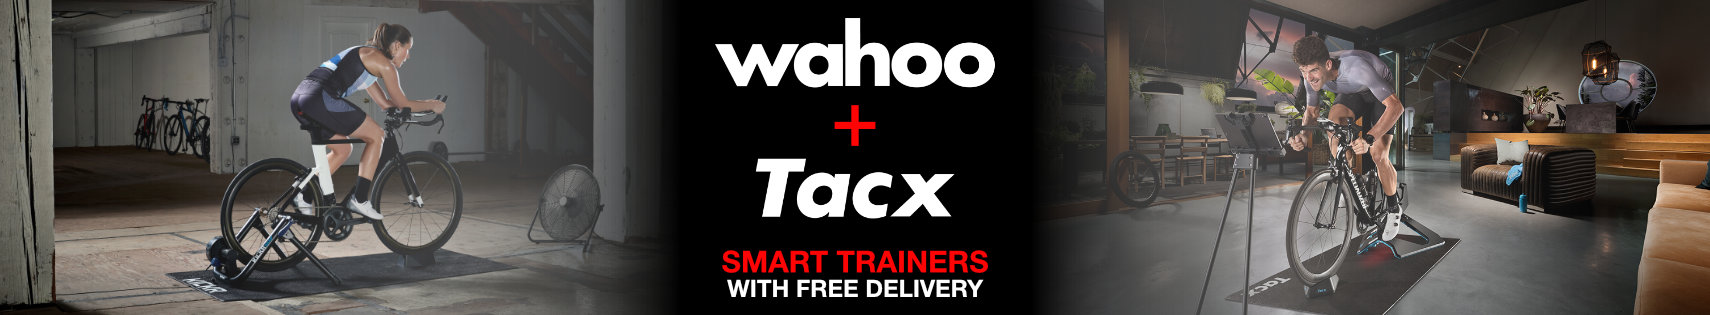 Wahoo + Tacx Smart Trainers with Free Delivery